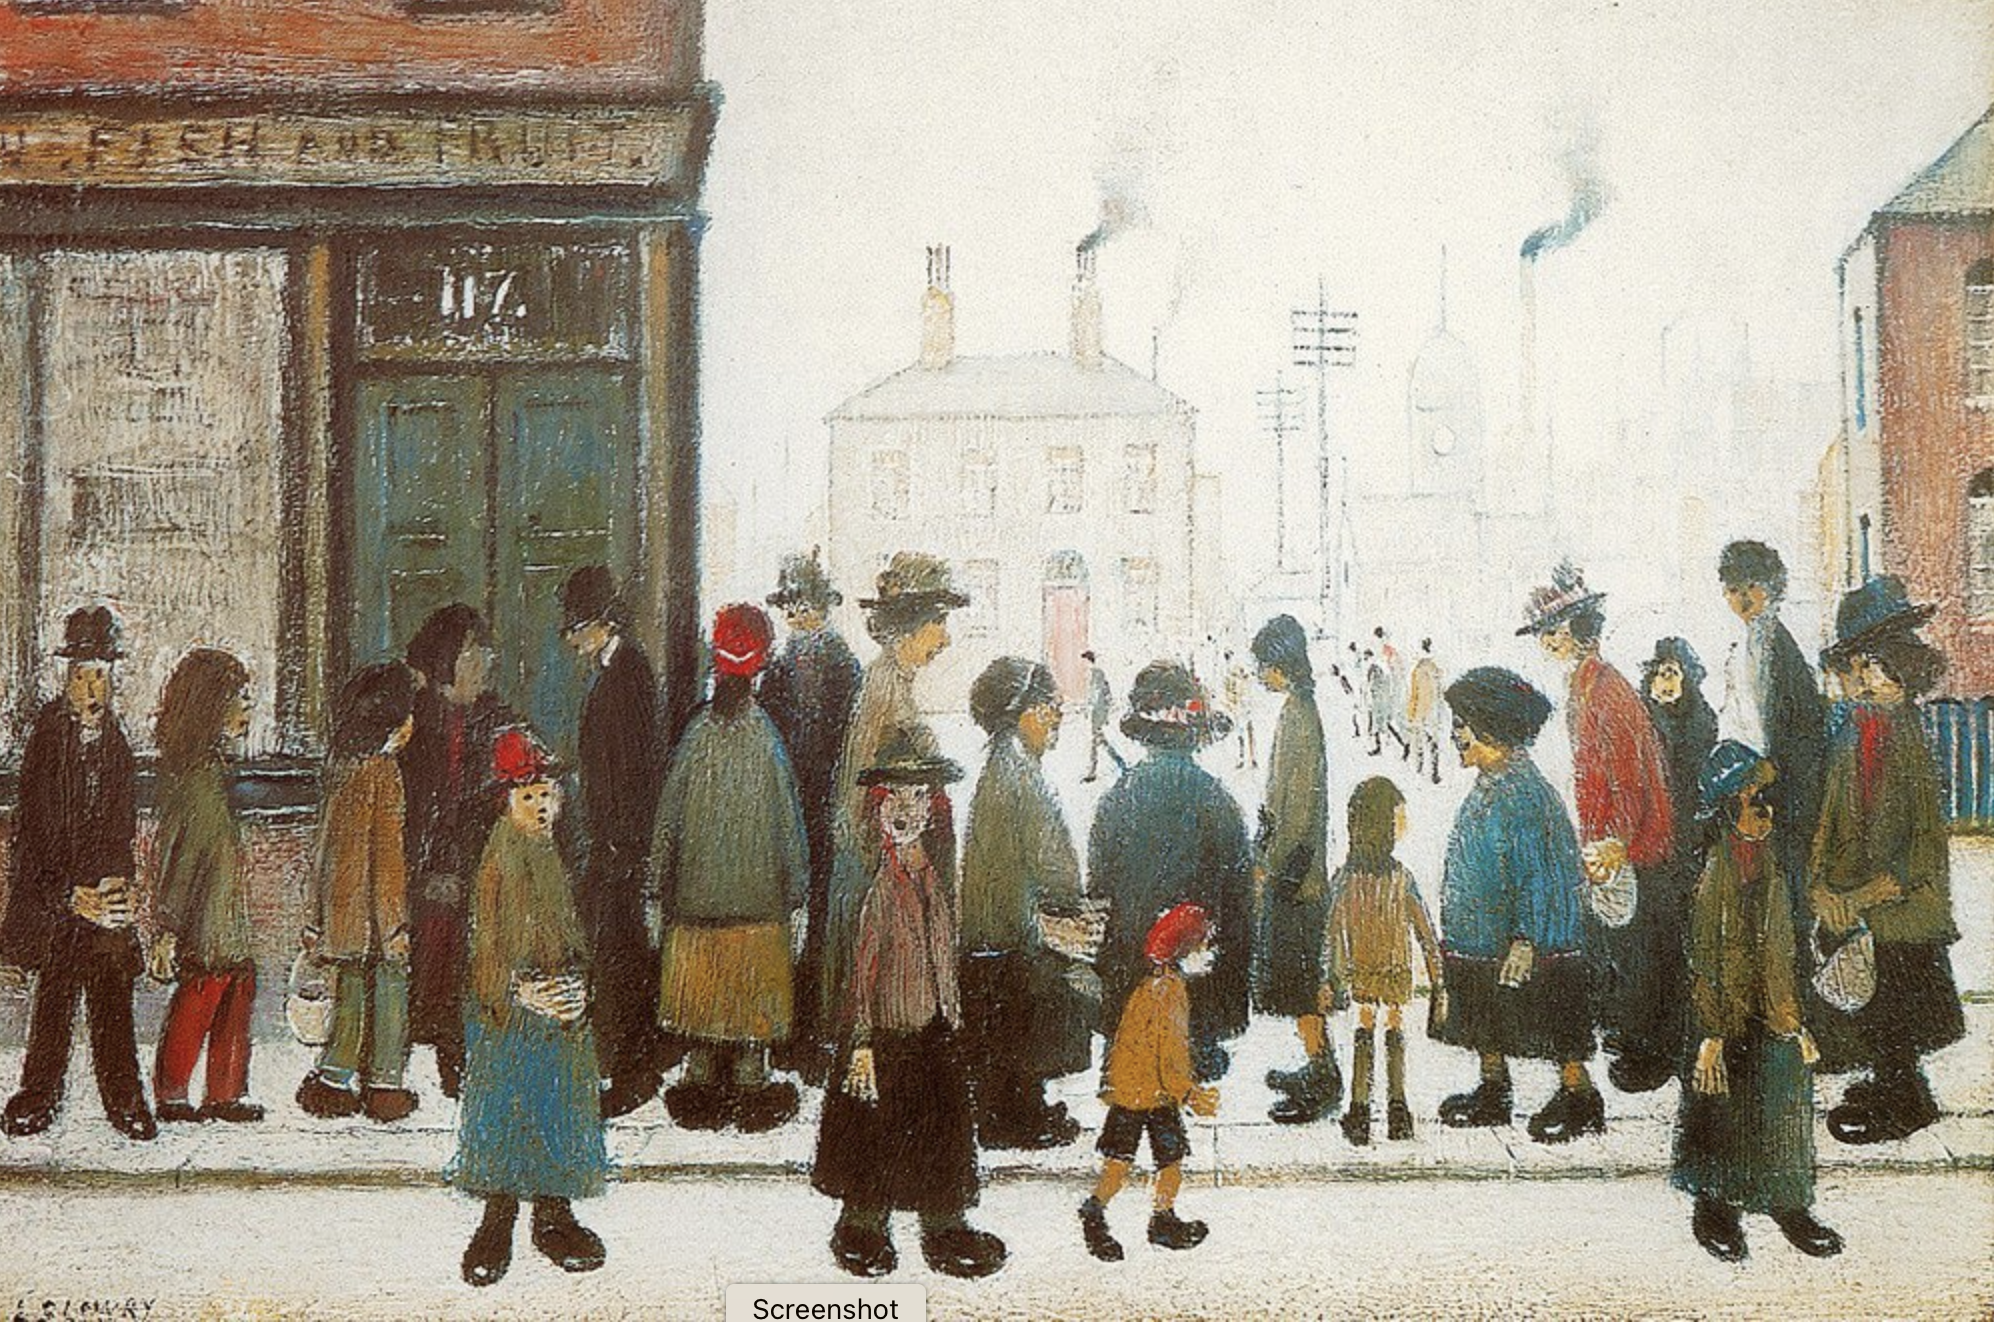 Waiting for the Shops to Open (1943) by Laurence Stephen Lowry (1887 - 1976), English artist.